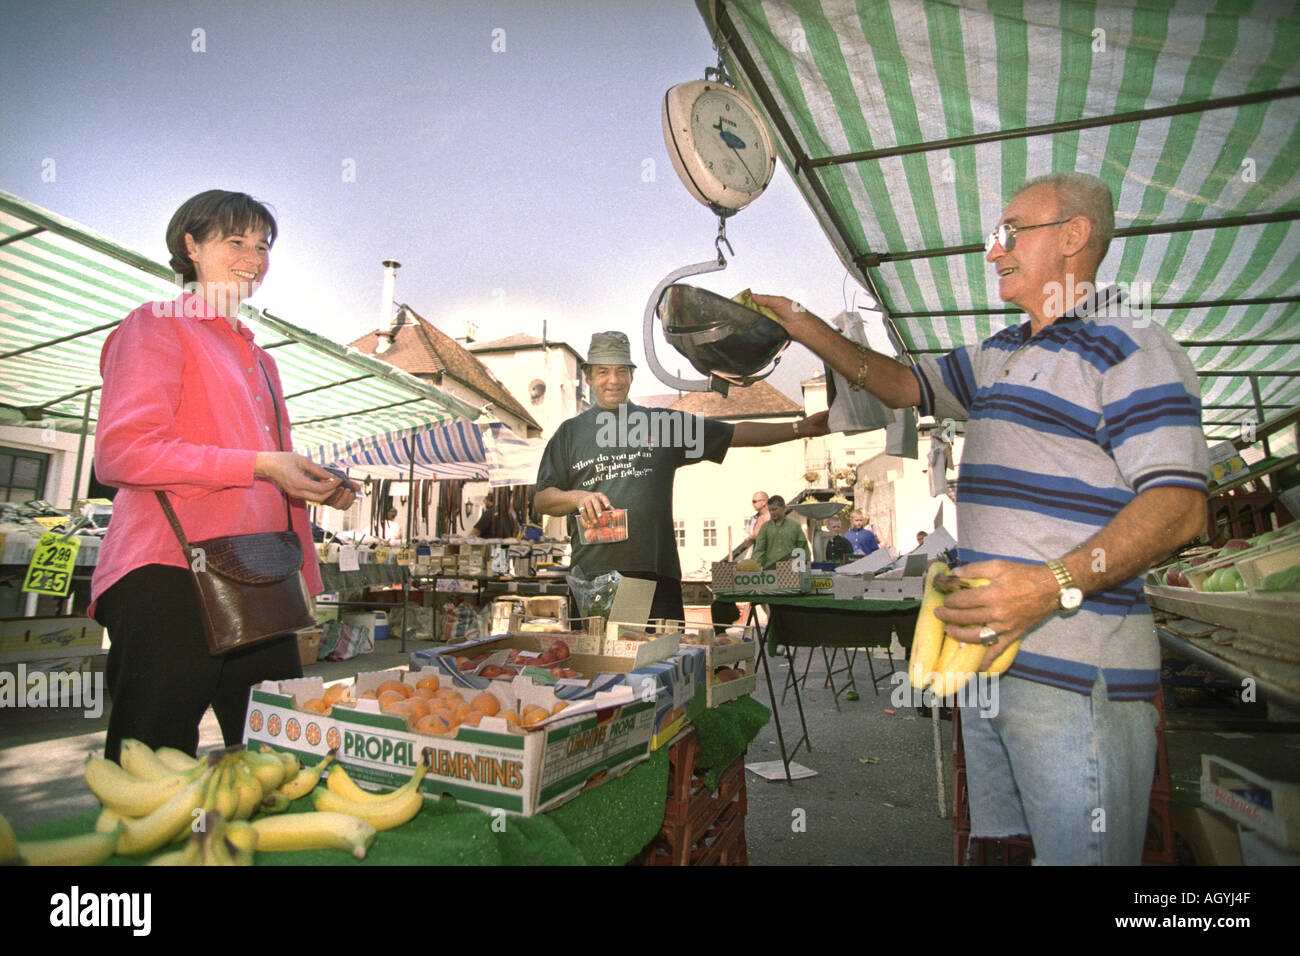 THE HAMPSHIRE TOWN OF ROMSEY UK TRADER JIMMY SULLIVAN SERVES A CUSTOMER FROM HIS FRUIT AND VEG STALL IN THE DOLPHIN MARKET - Stock Image